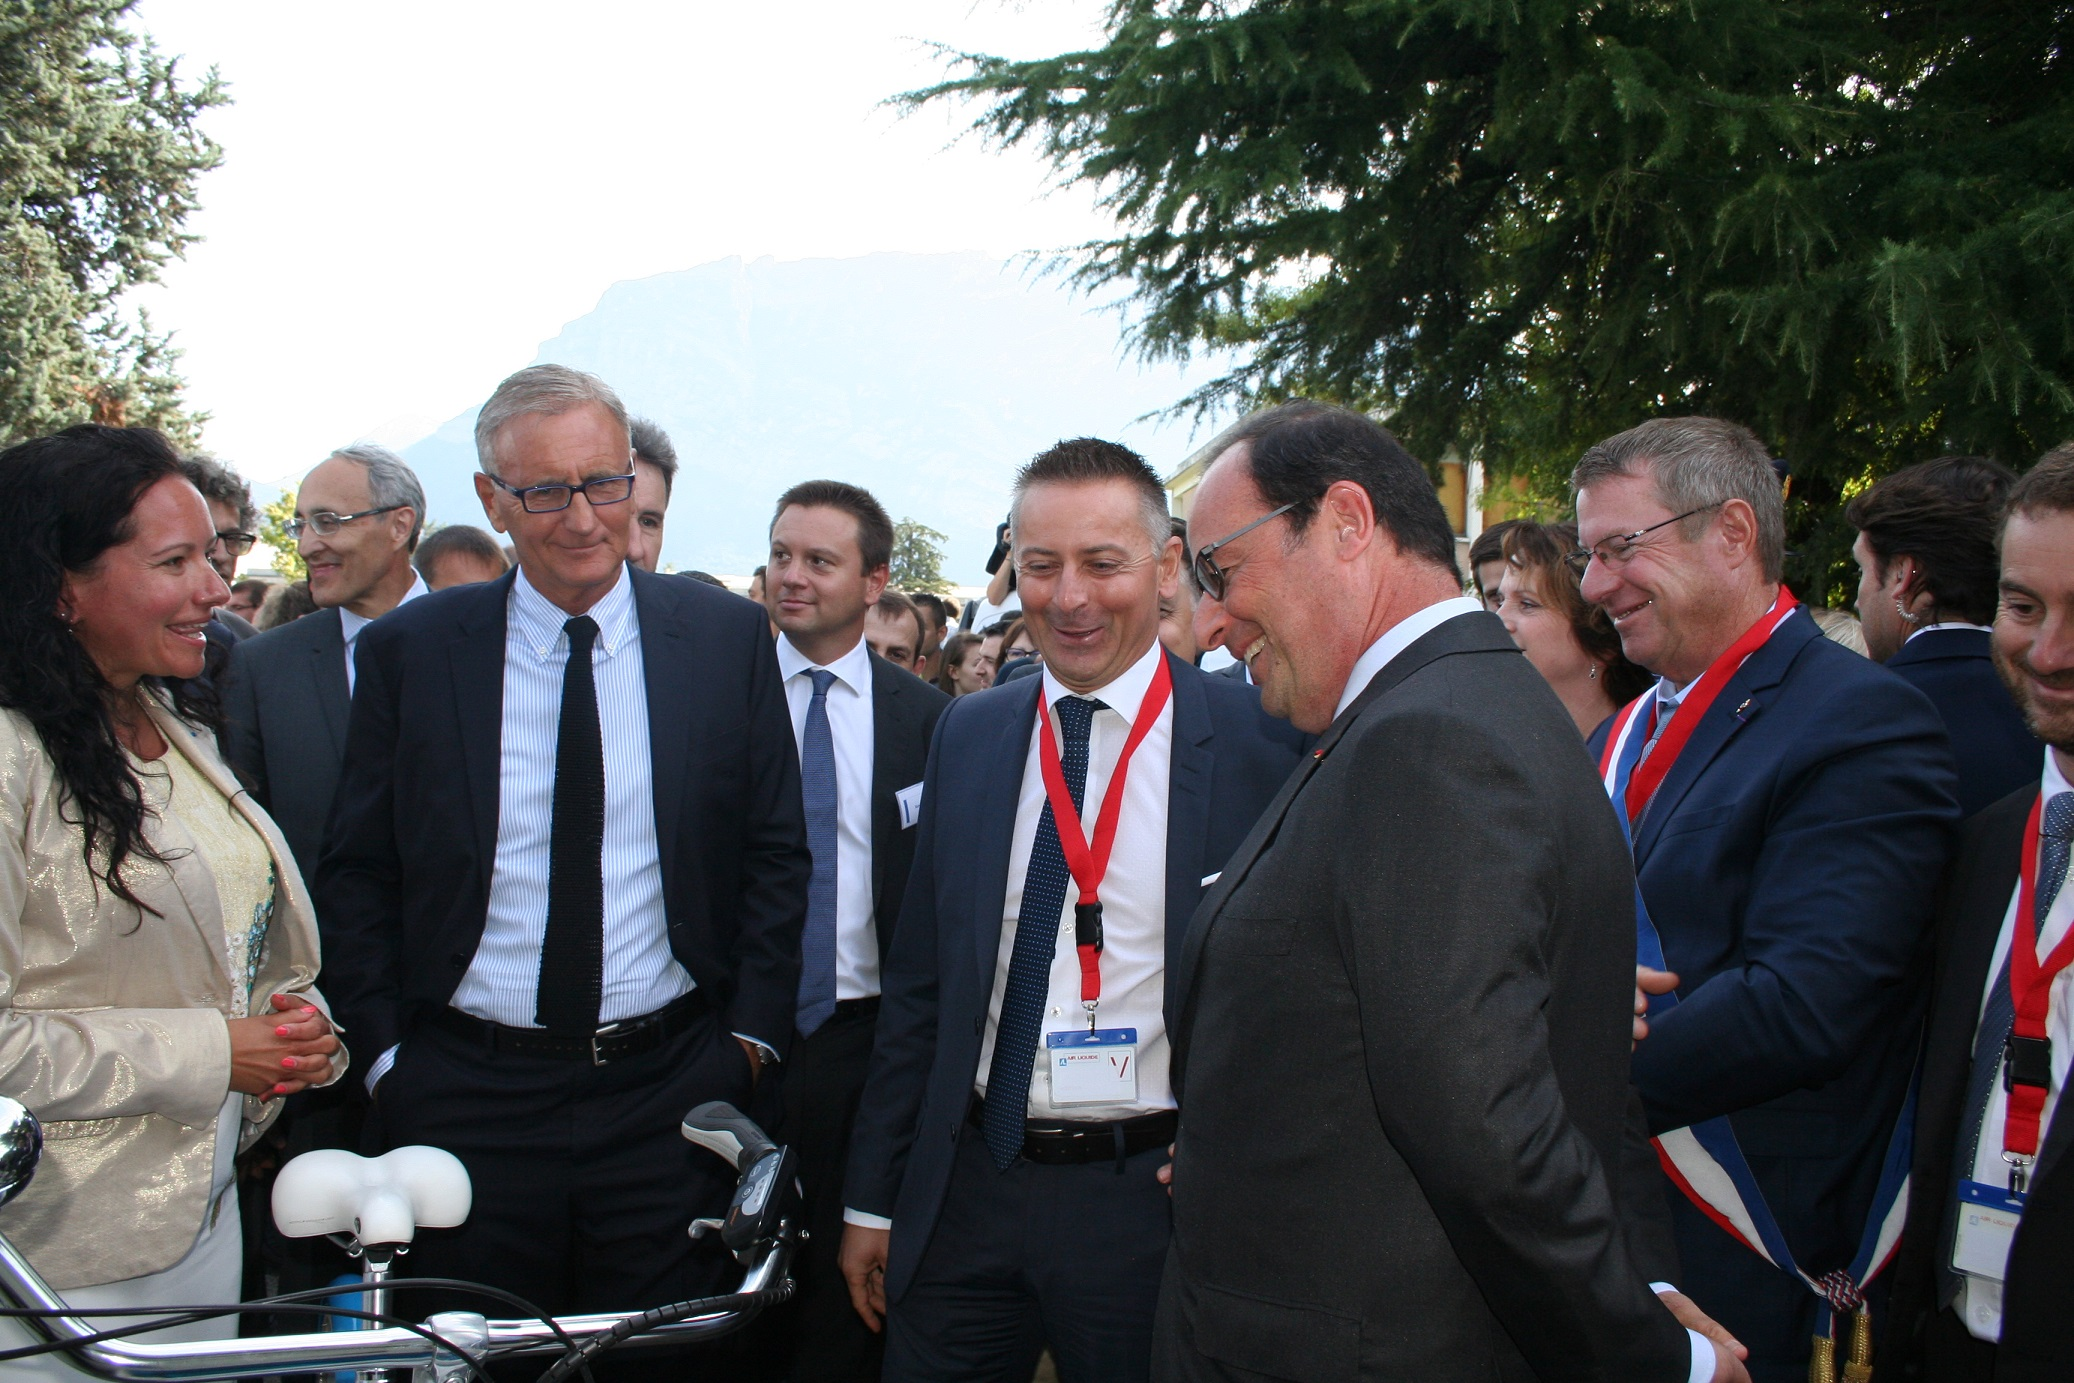 Atawey presents a hydrogen bicycle prototype to the French President Hollande